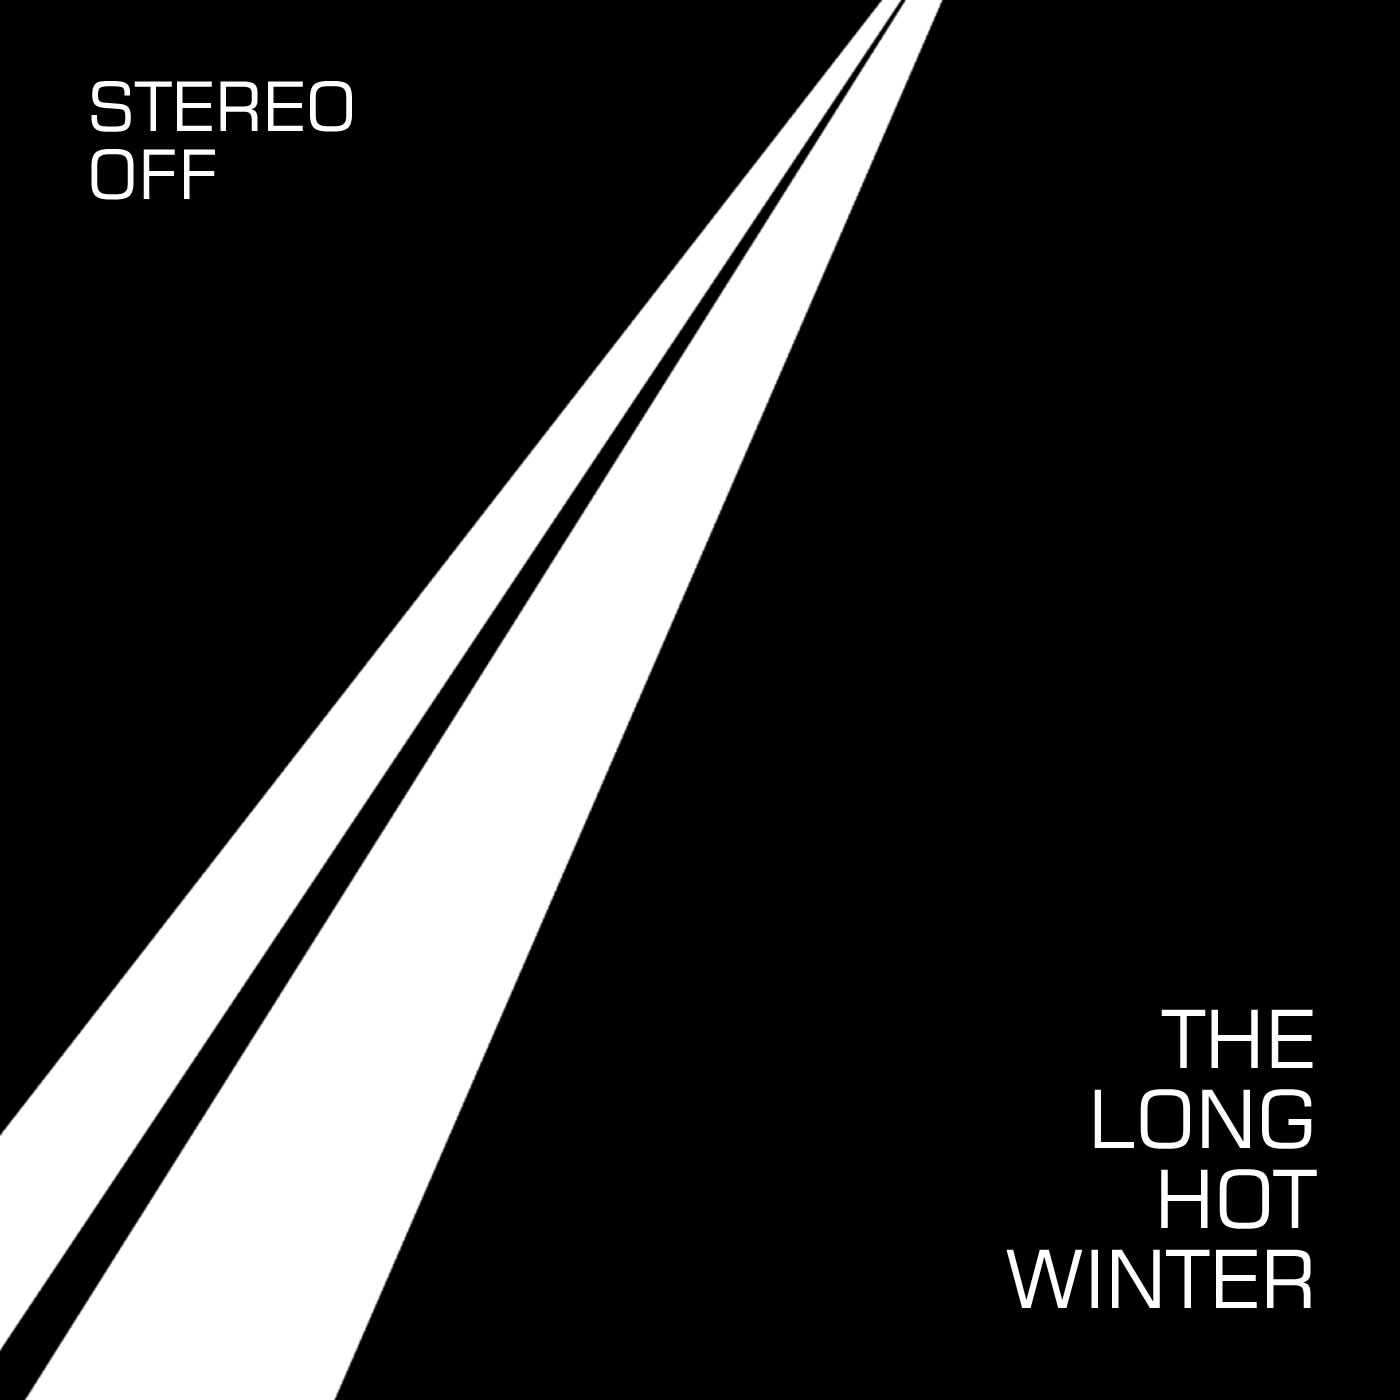 Stereo-off-the-long-hot-winter-EP2